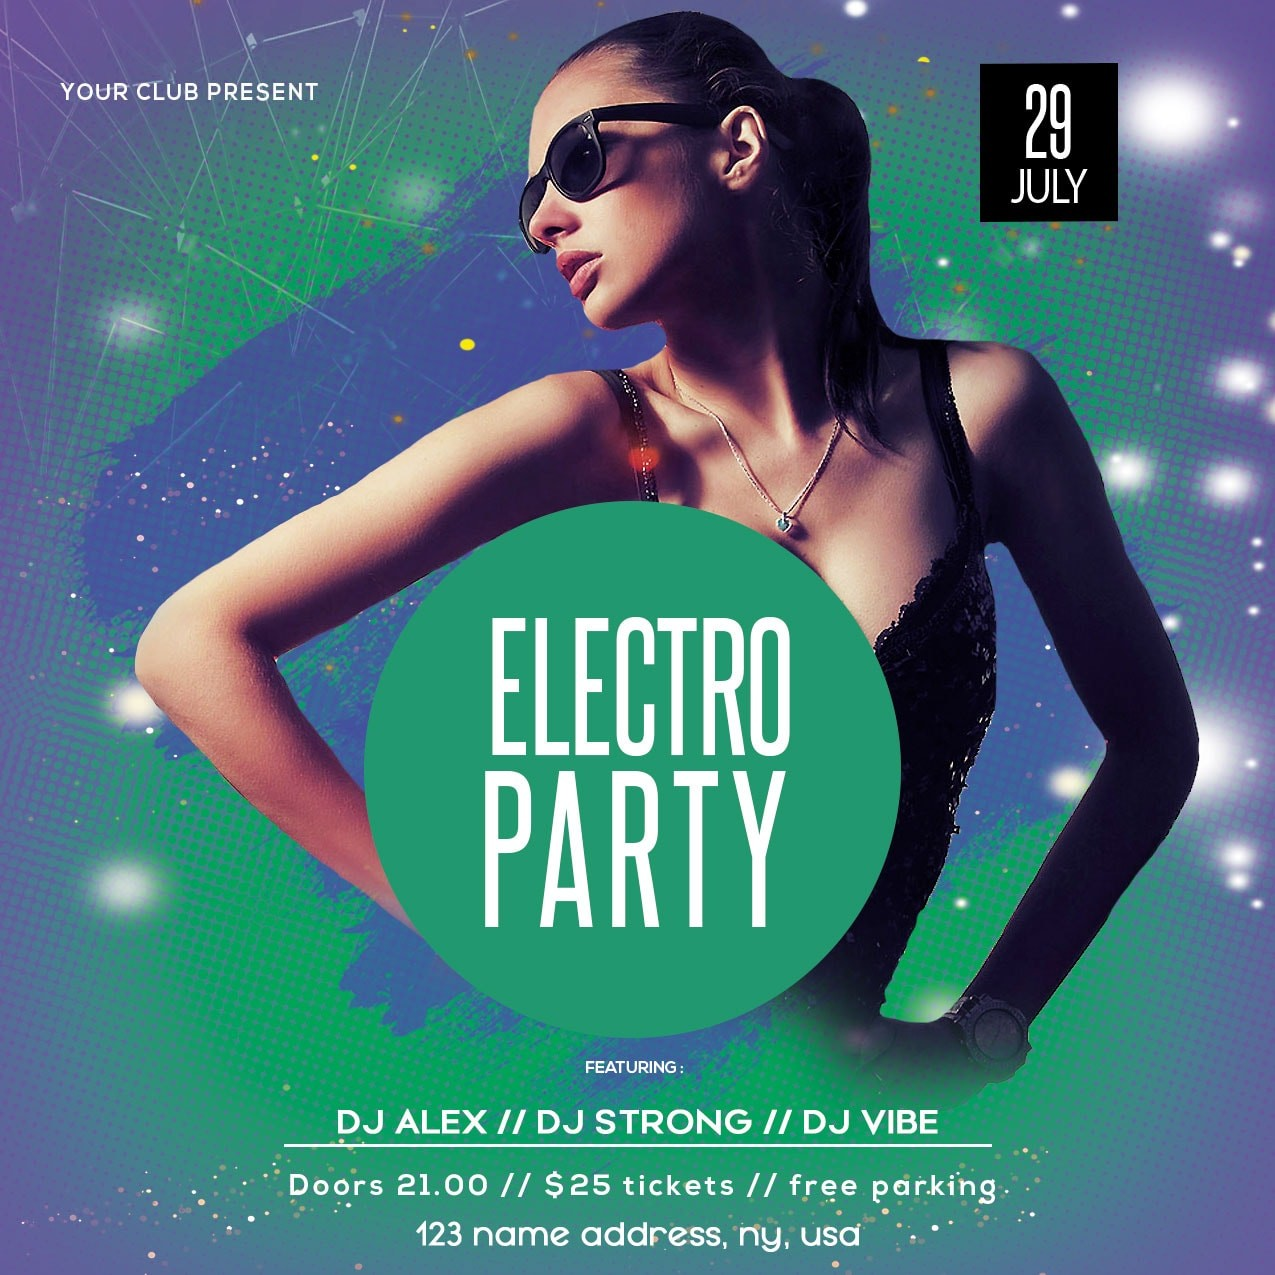 Electro Party Event Free PSD Flyer Template